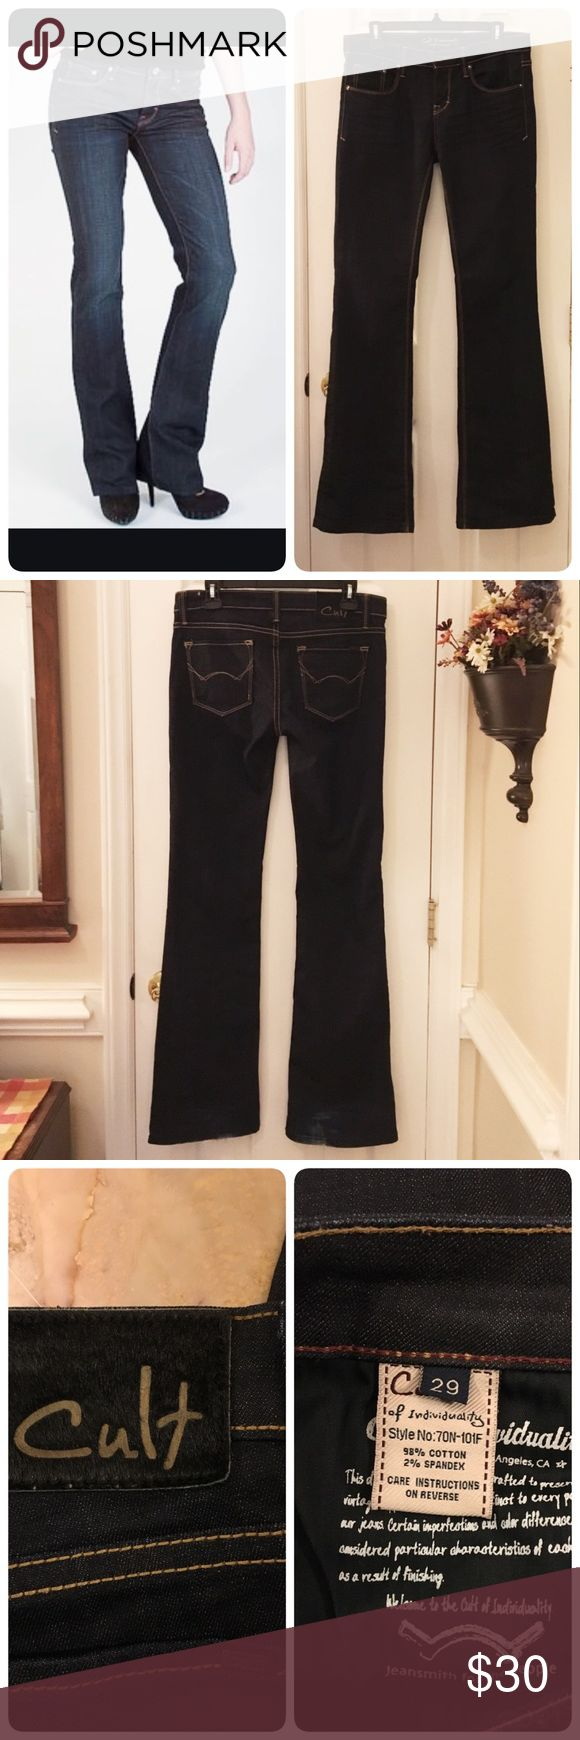 "Cult of Individuality Vixen Curvy jeans Cult of Individuality Vixen Curvy jeans, size 29. Dark wash, bootcut. Inseam is 33, 8"" rise, waist measures 16"". Excellent condition with some wear to bottom of legs as shown, adds character. Cult of Individuality Jeans Boot Cut"